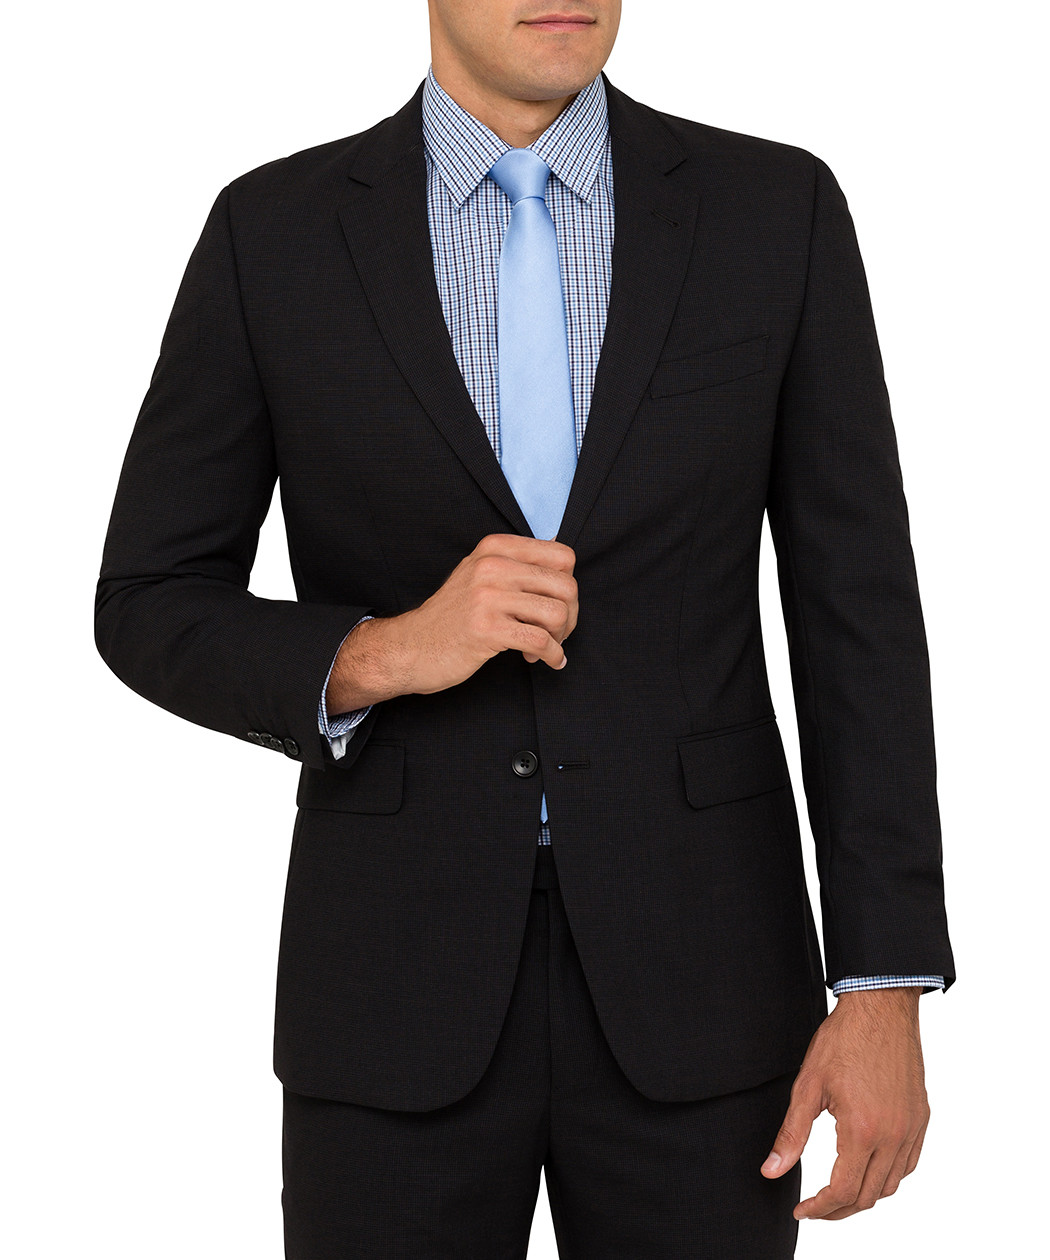 Van Heusen Slim Fit Textured Black Suit Jacket | Mens Jackets ...